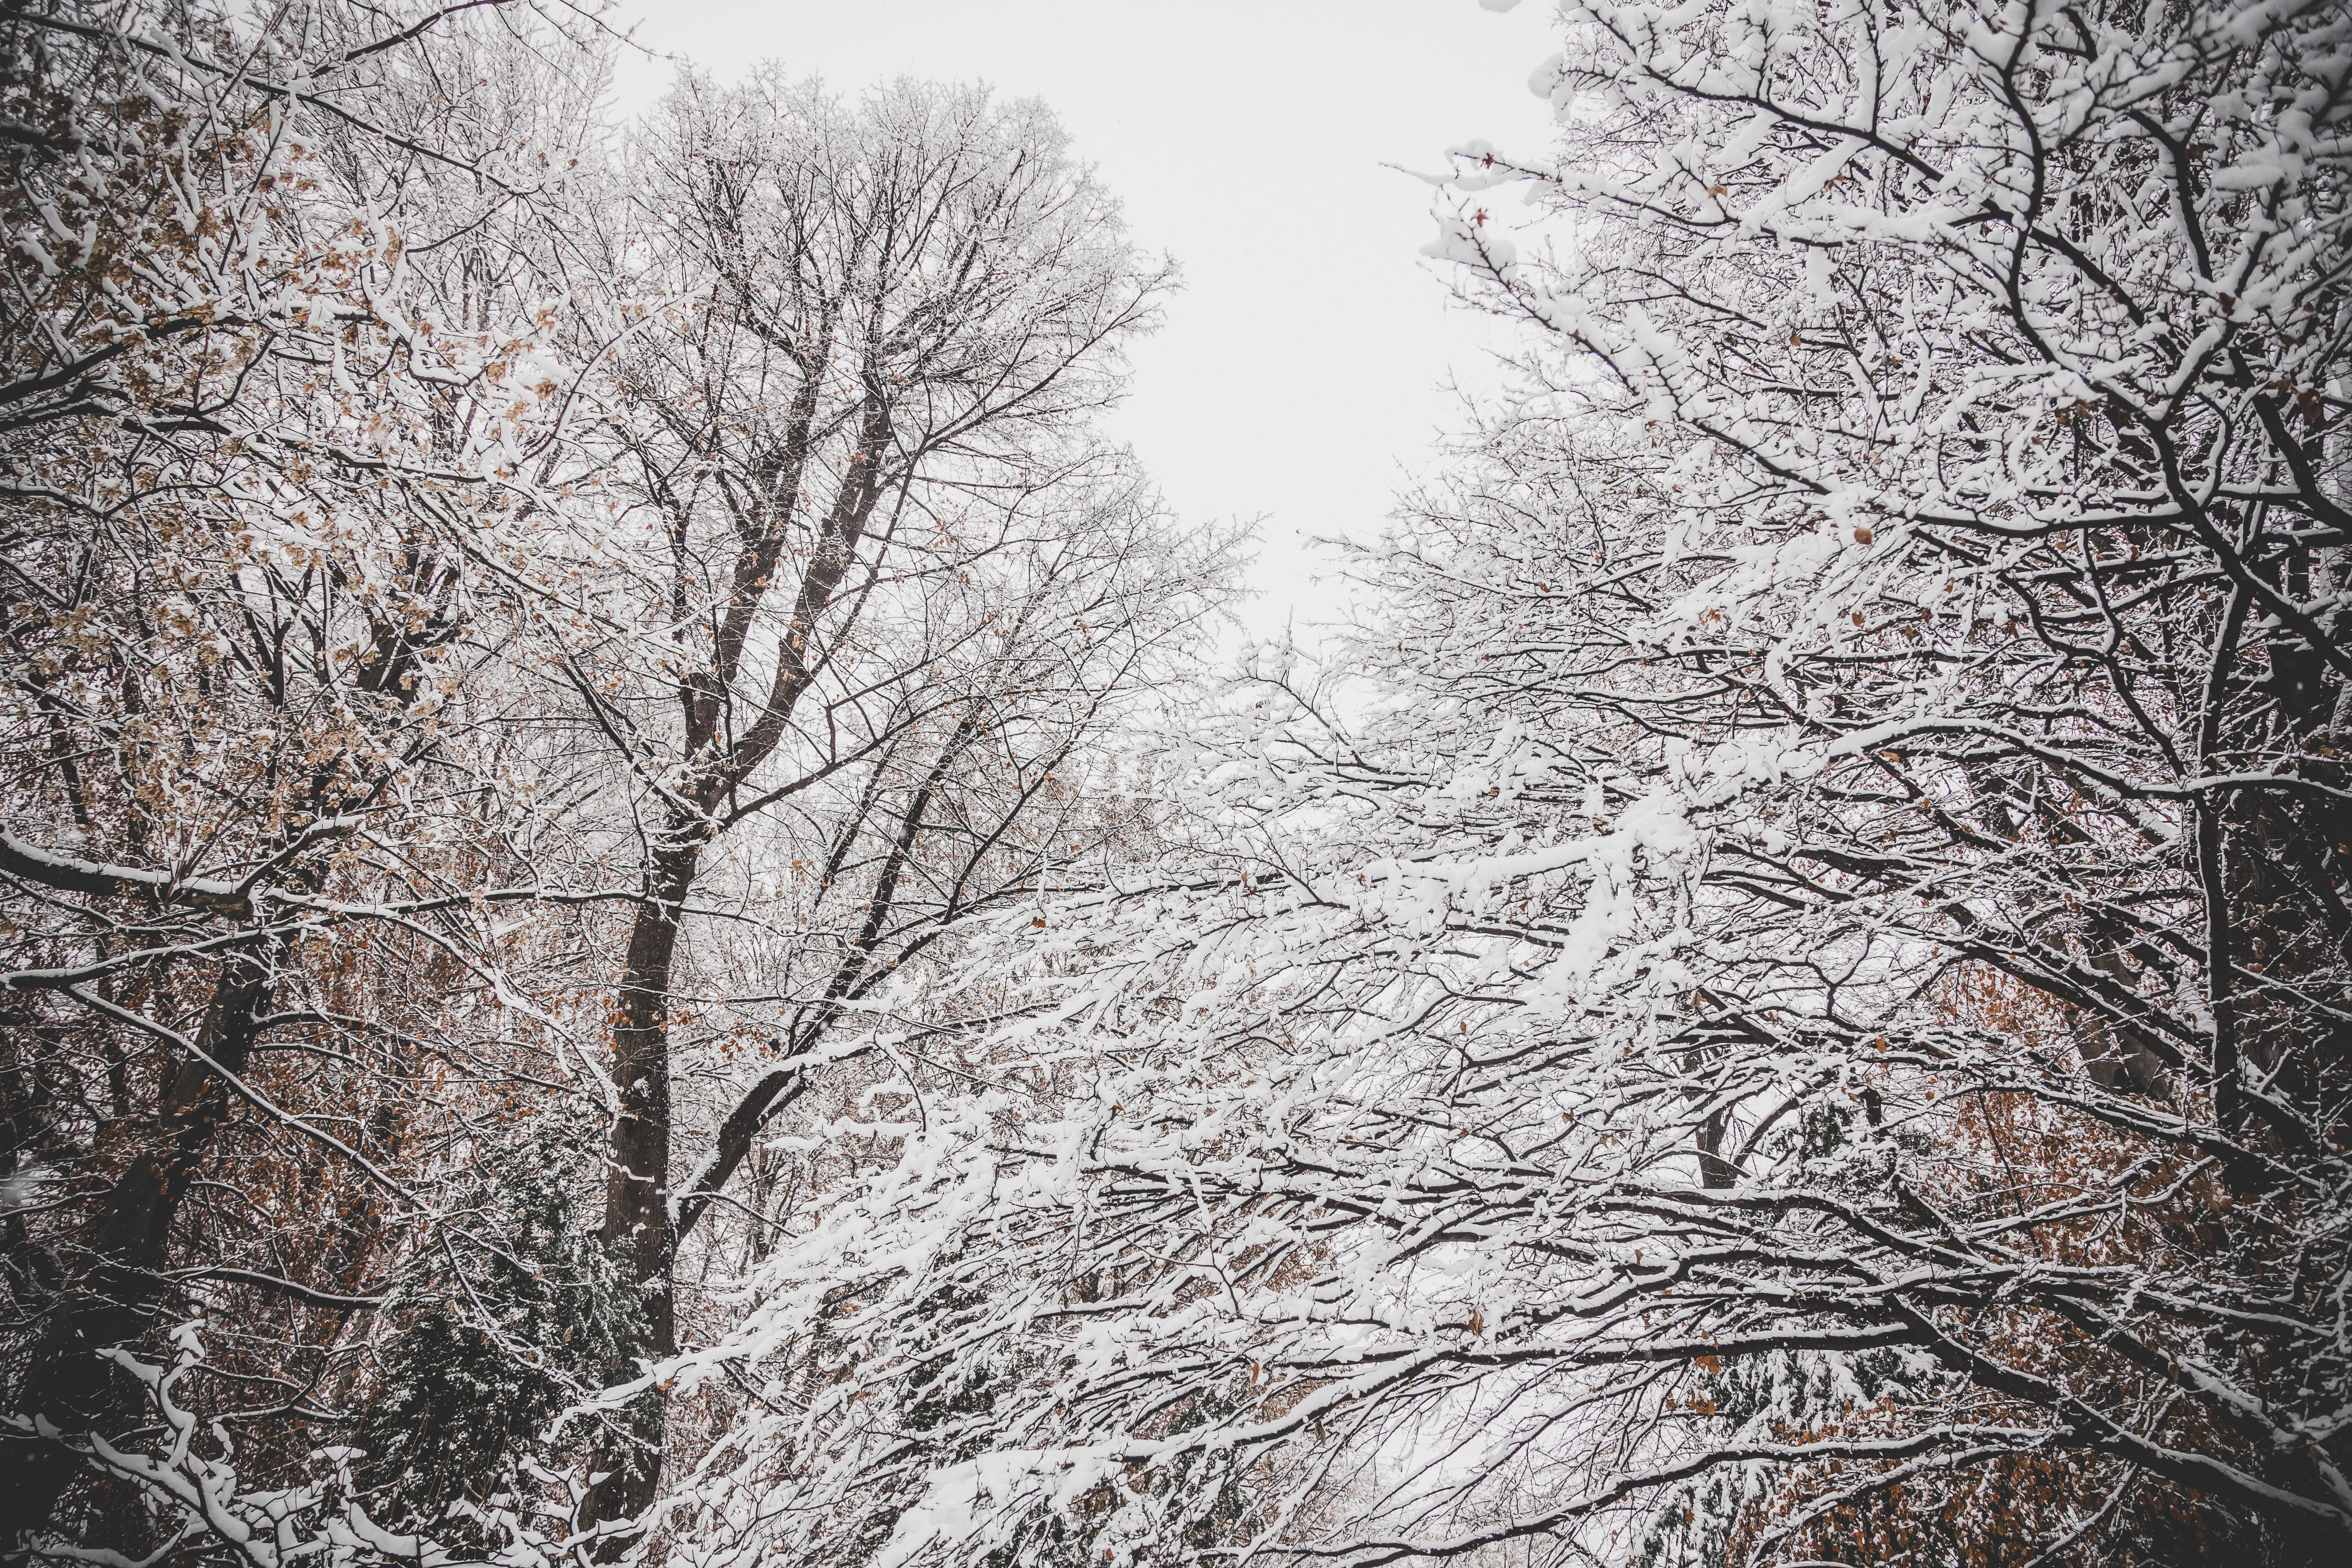 Snowy Leafless Trees